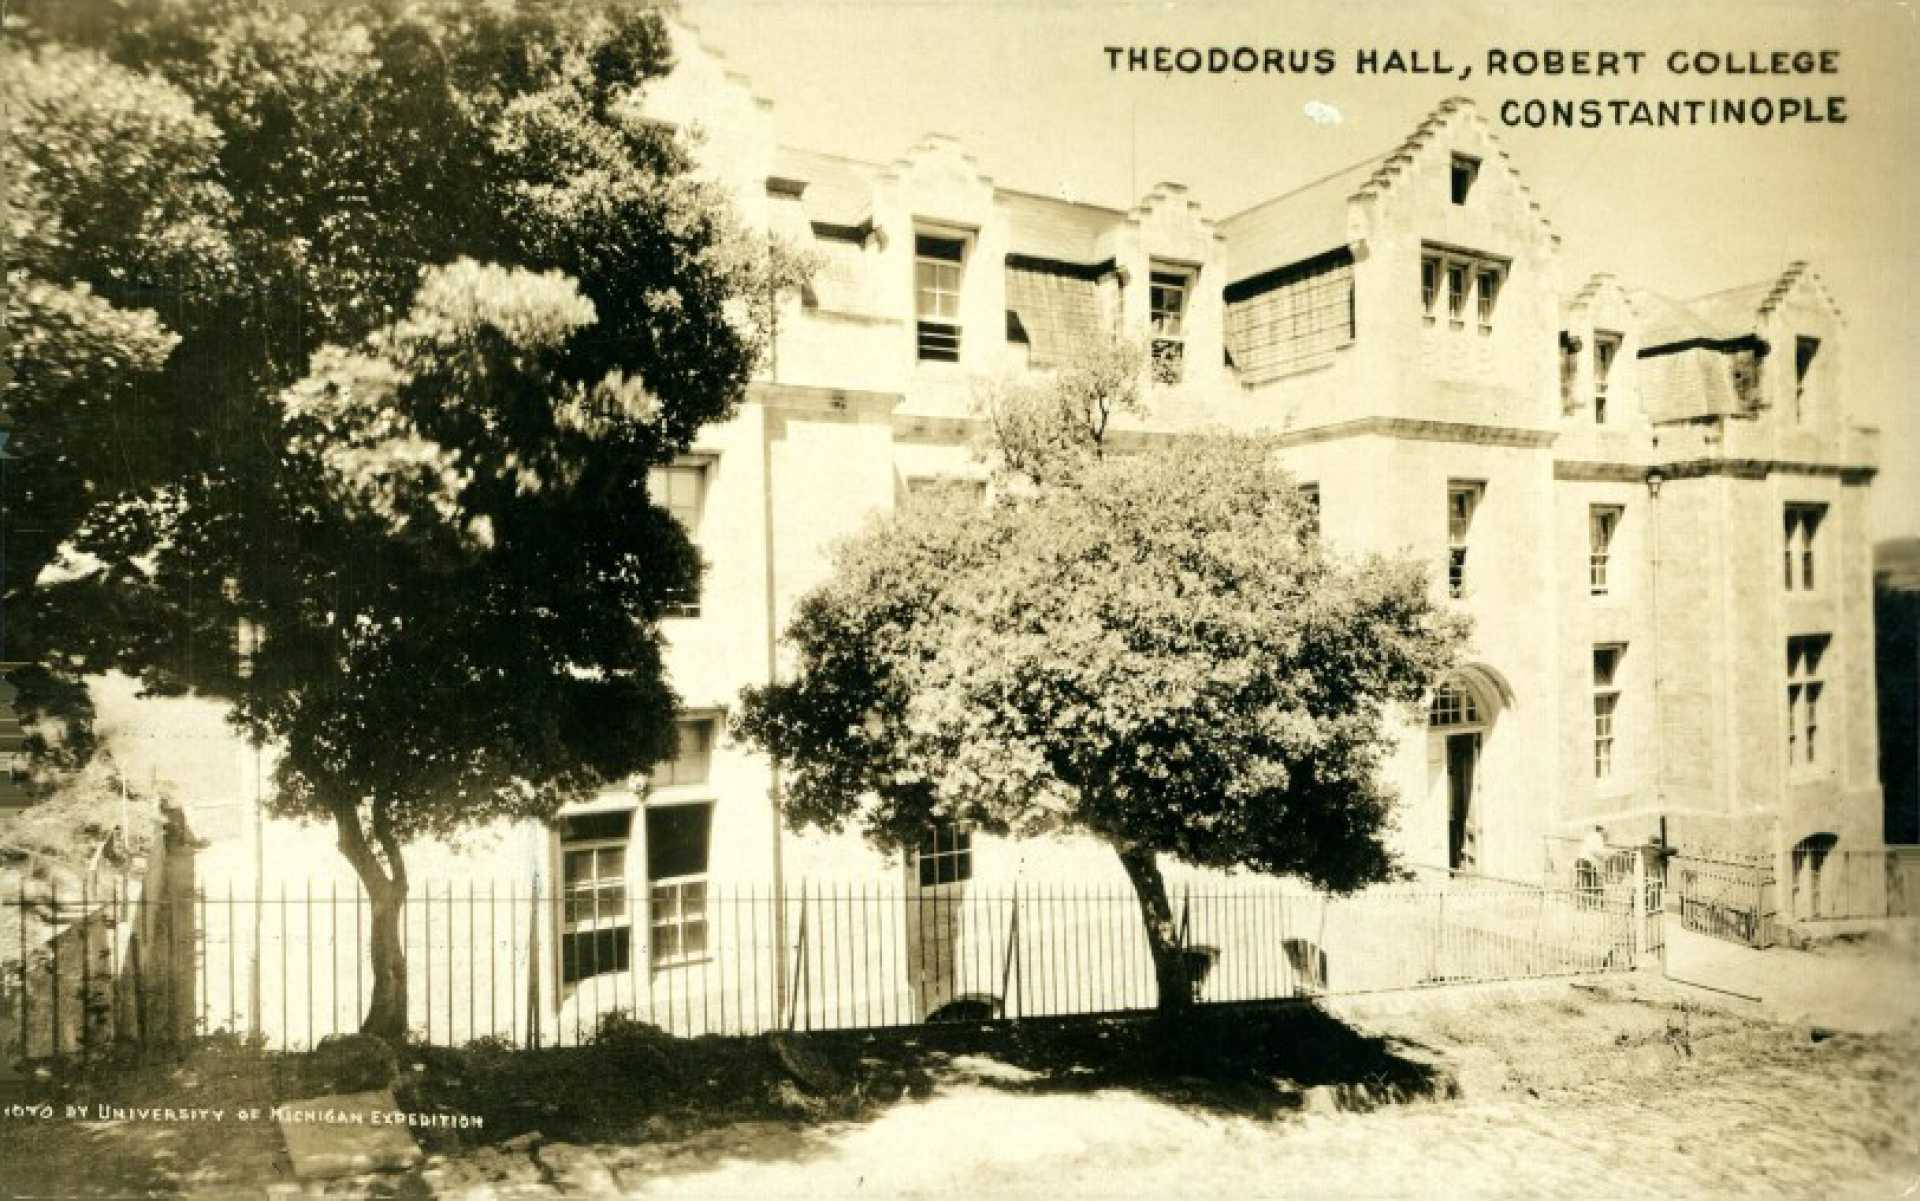 Theodorus Hall. Robert College Constantinople